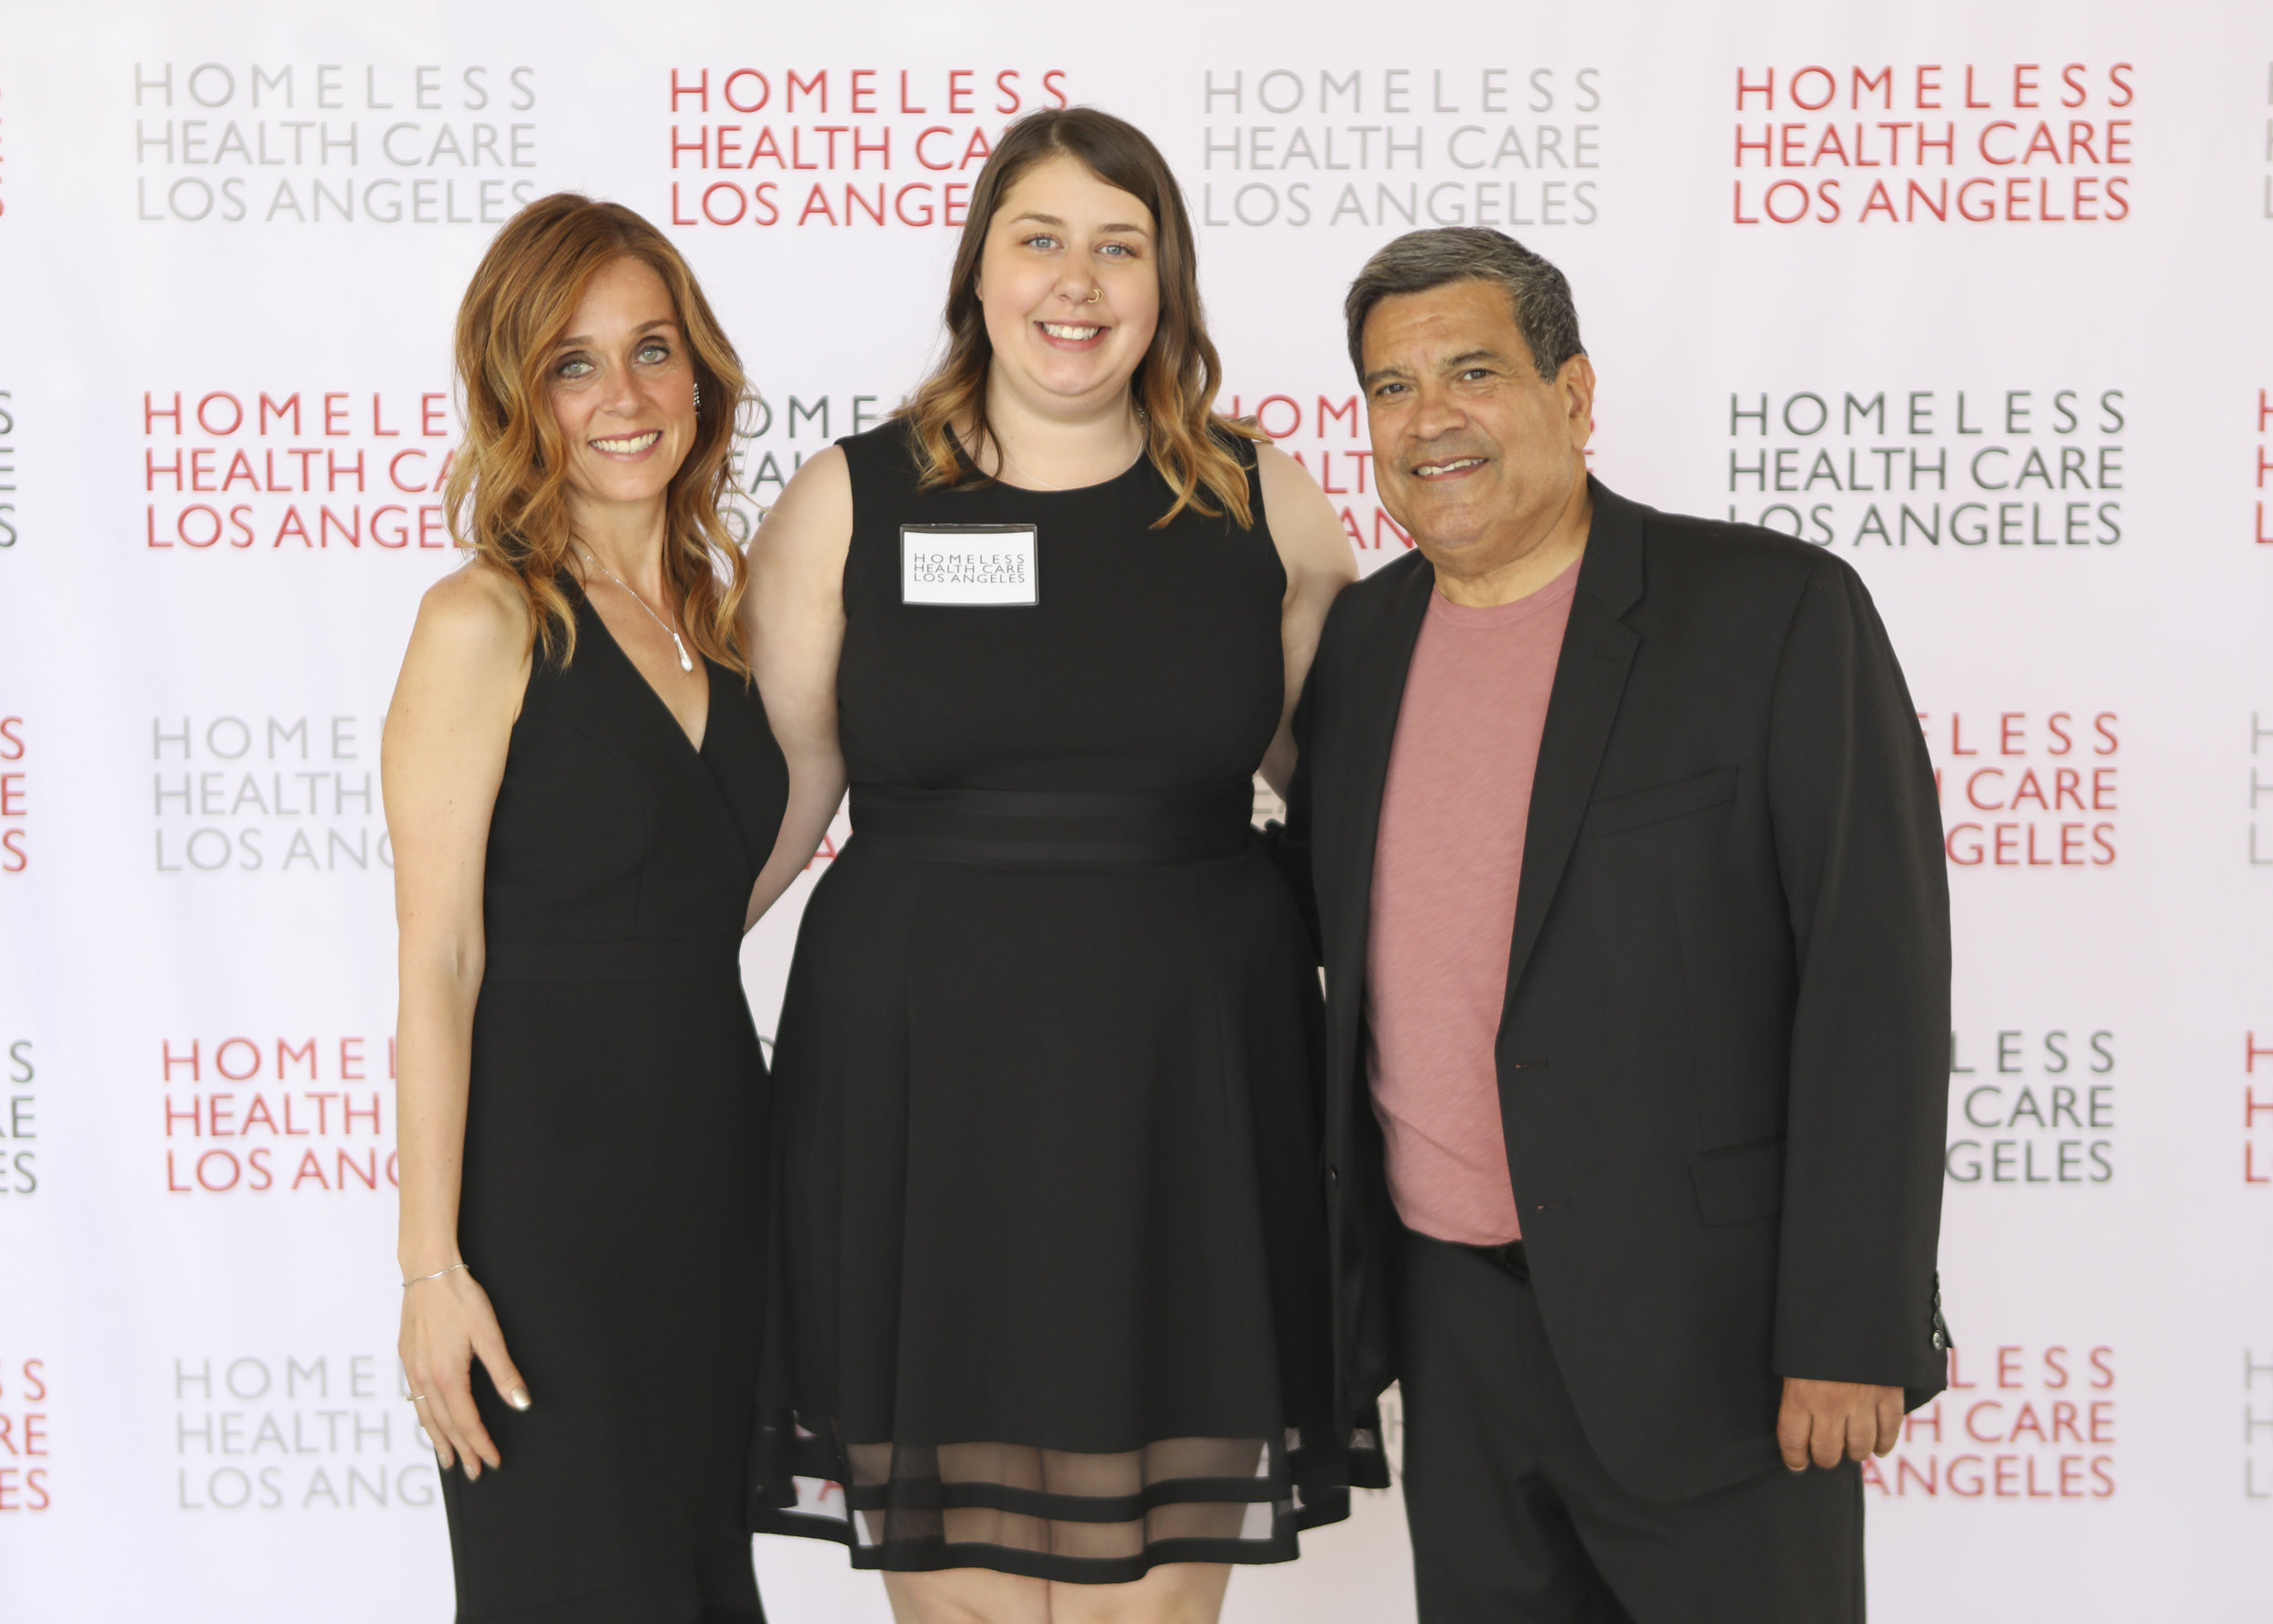 Homeless Healthcare Plato de Oro 2019_14.JPG